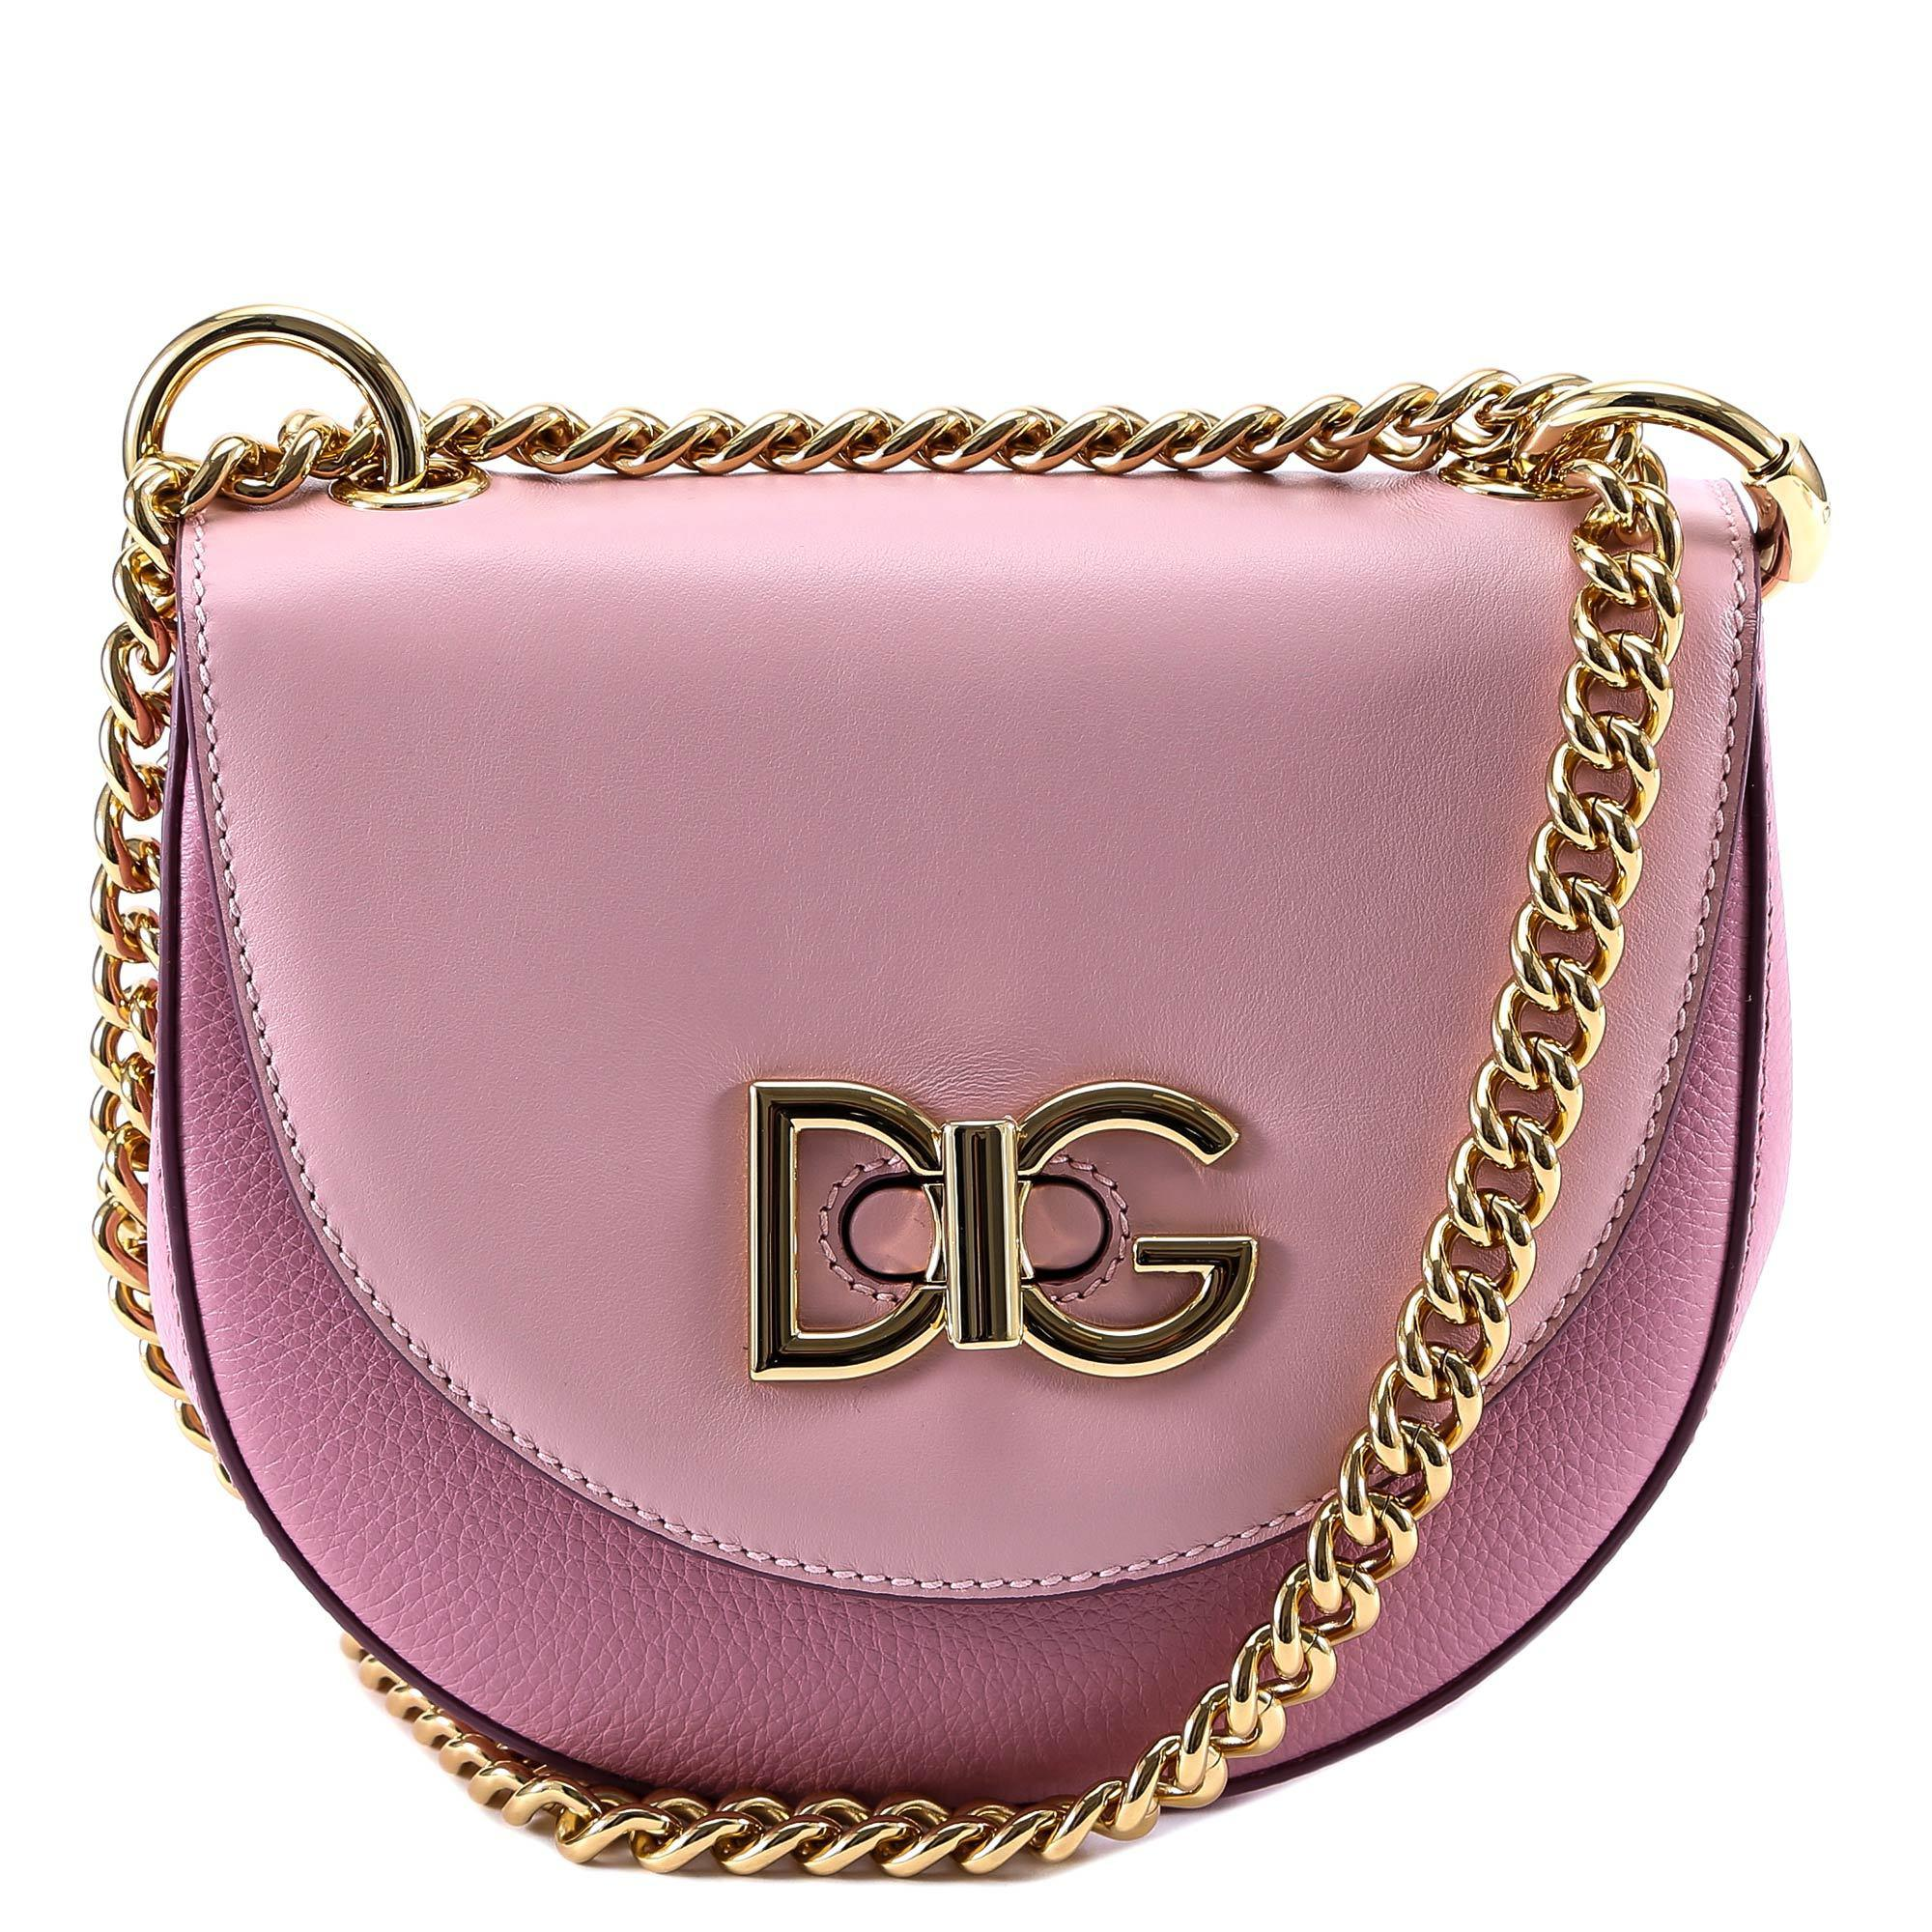 Lyst - Dolce   Gabbana Wifi Shoulder Bag in Pink 602eae7fb4bde